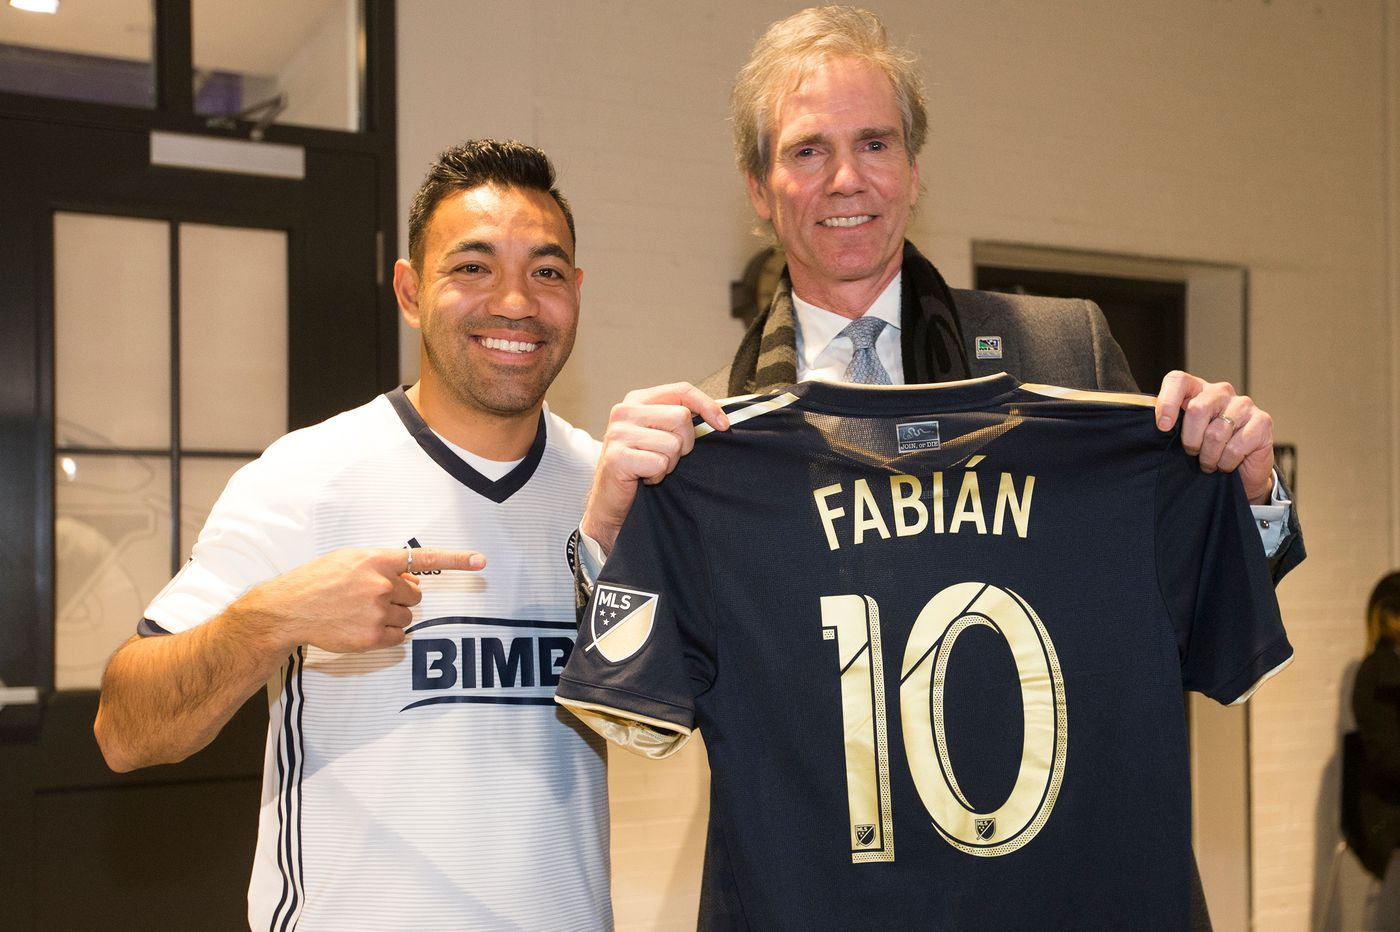 Union owner Jay Sugarman pleased with team's best season, and wants more